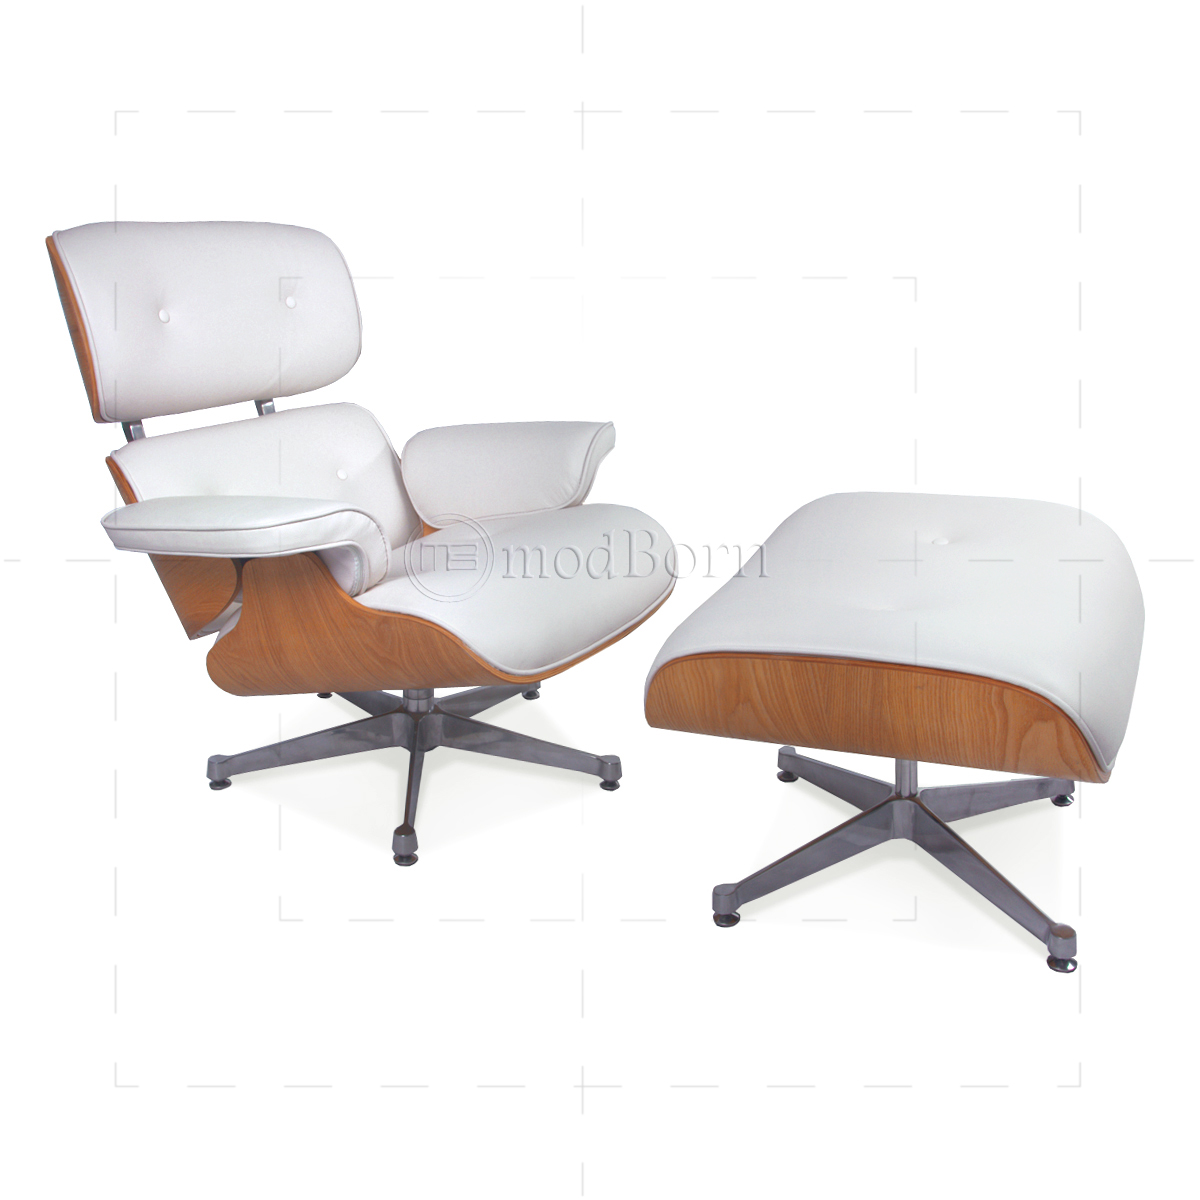 Fine Eames Style Lounge Chair And Ottoman White Leather Ash Pdpeps Interior Chair Design Pdpepsorg